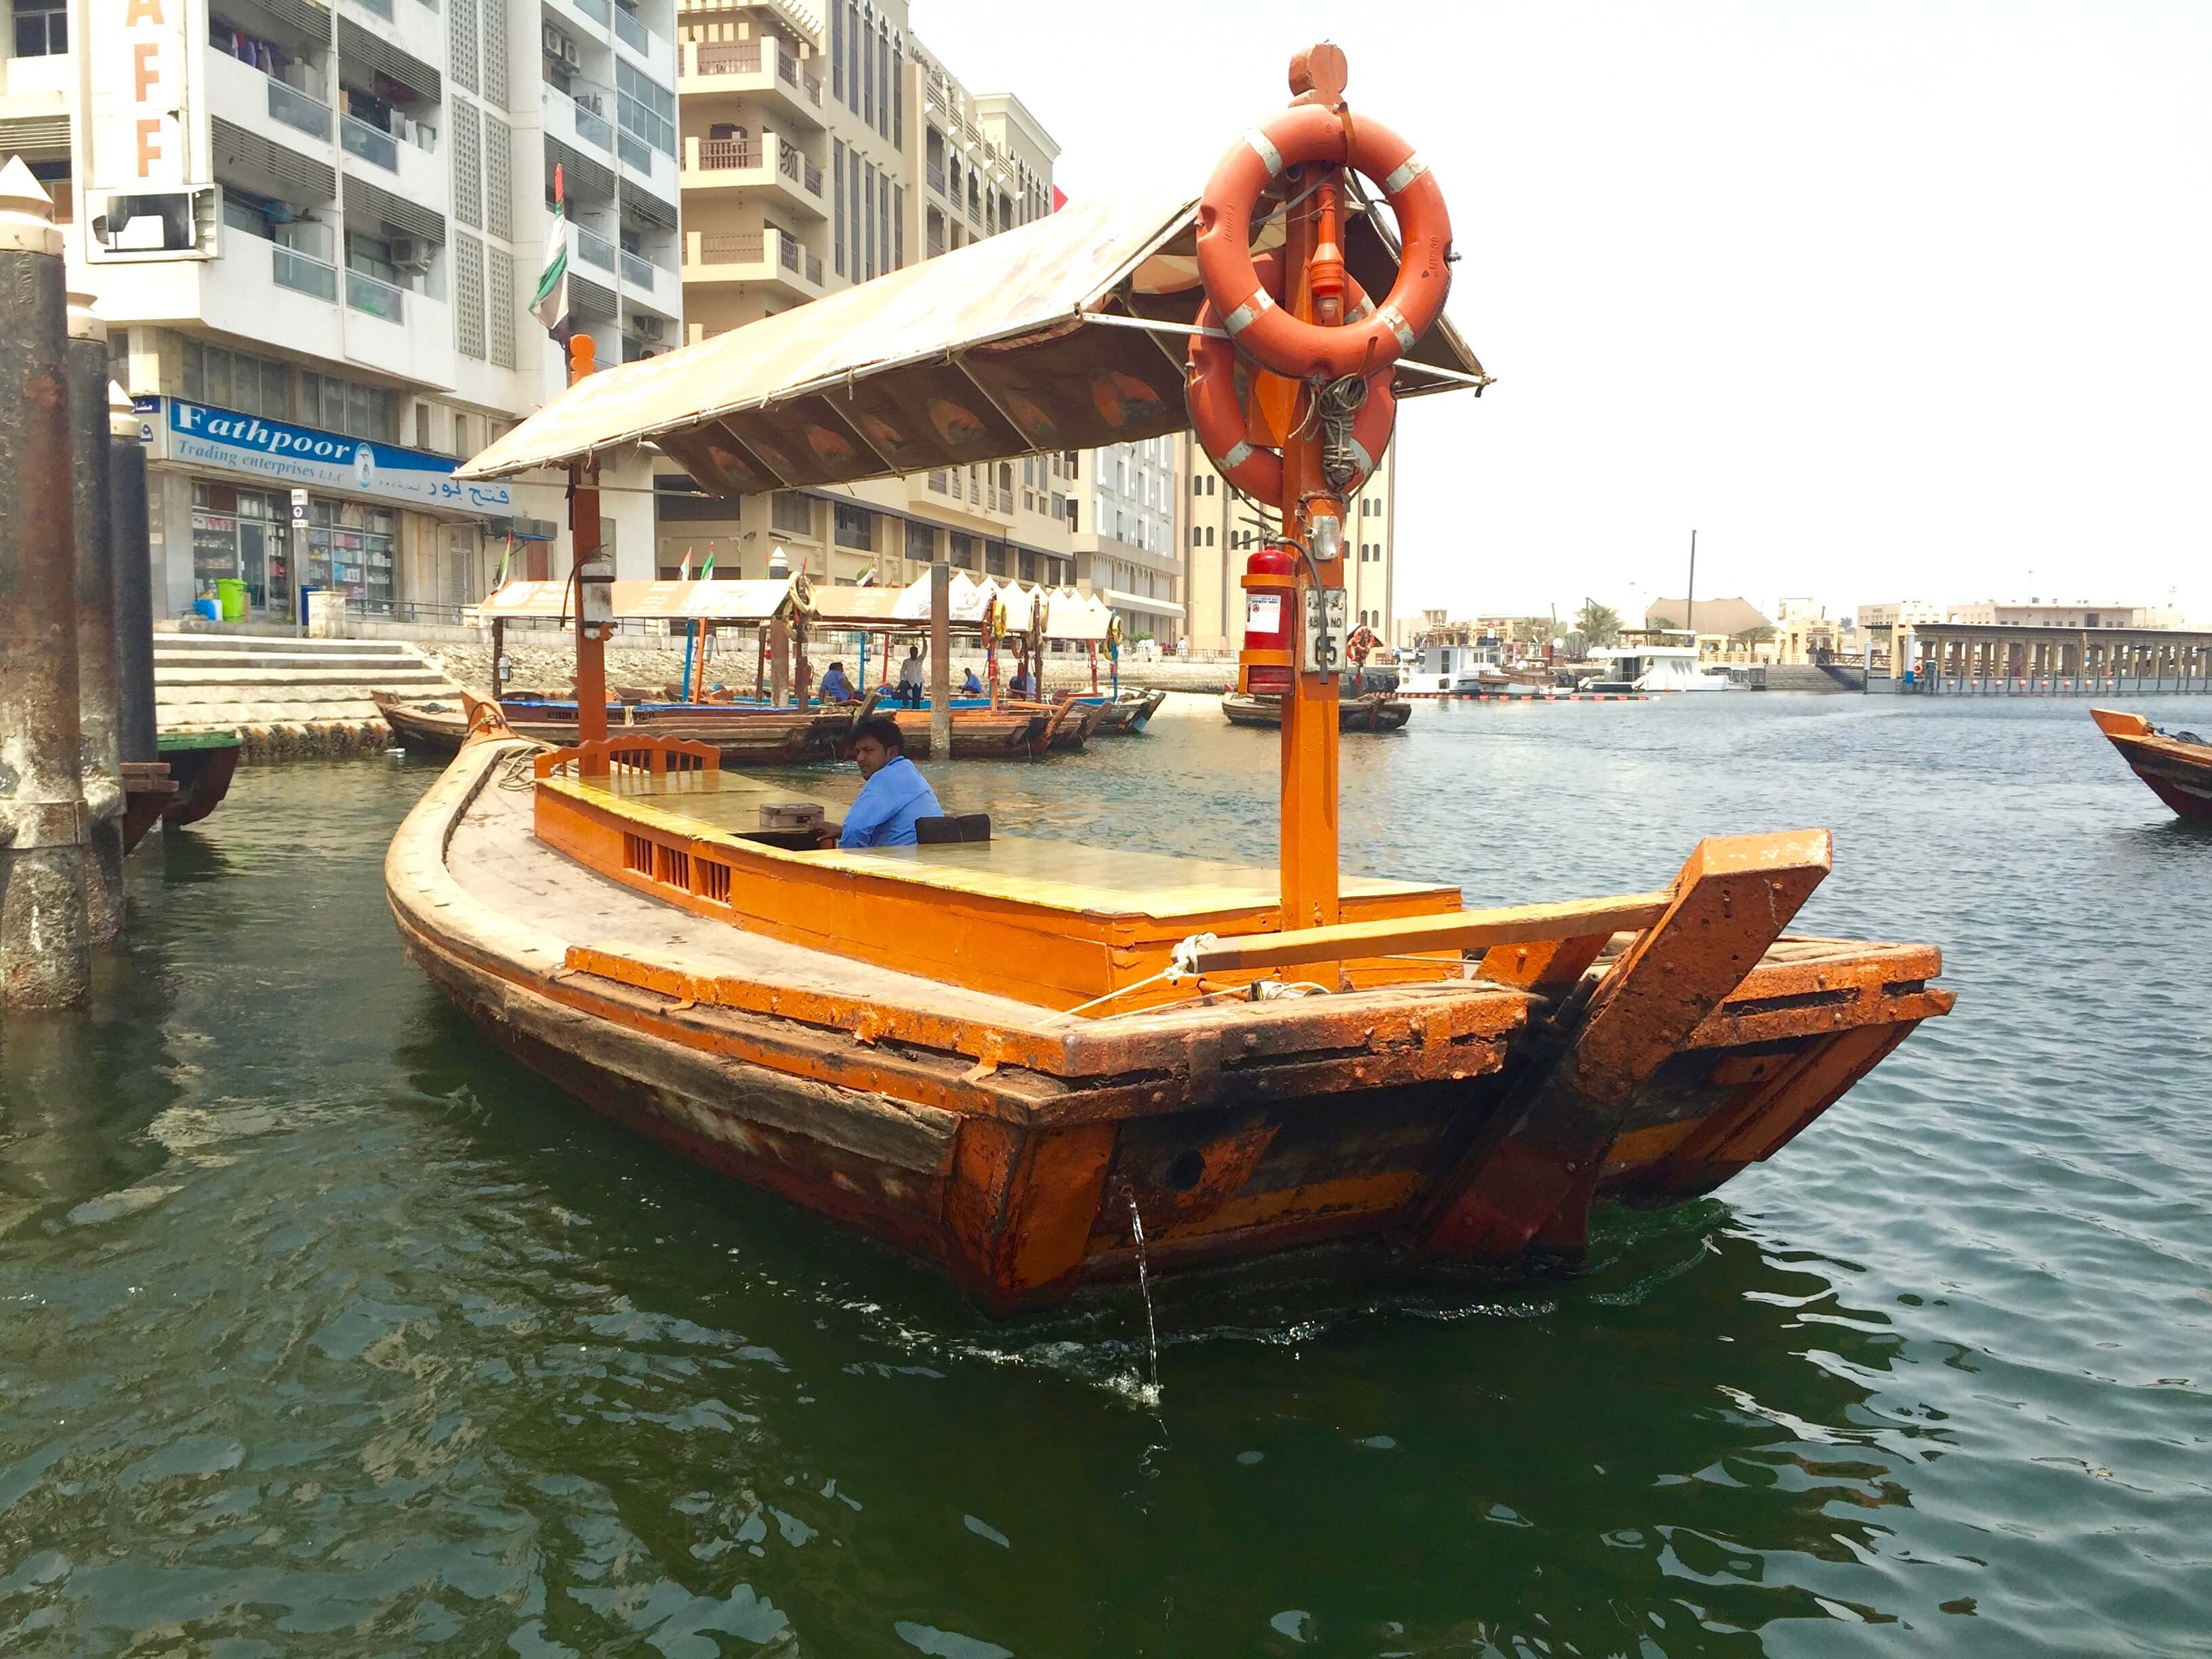 A traditional boat on the river in Dubai